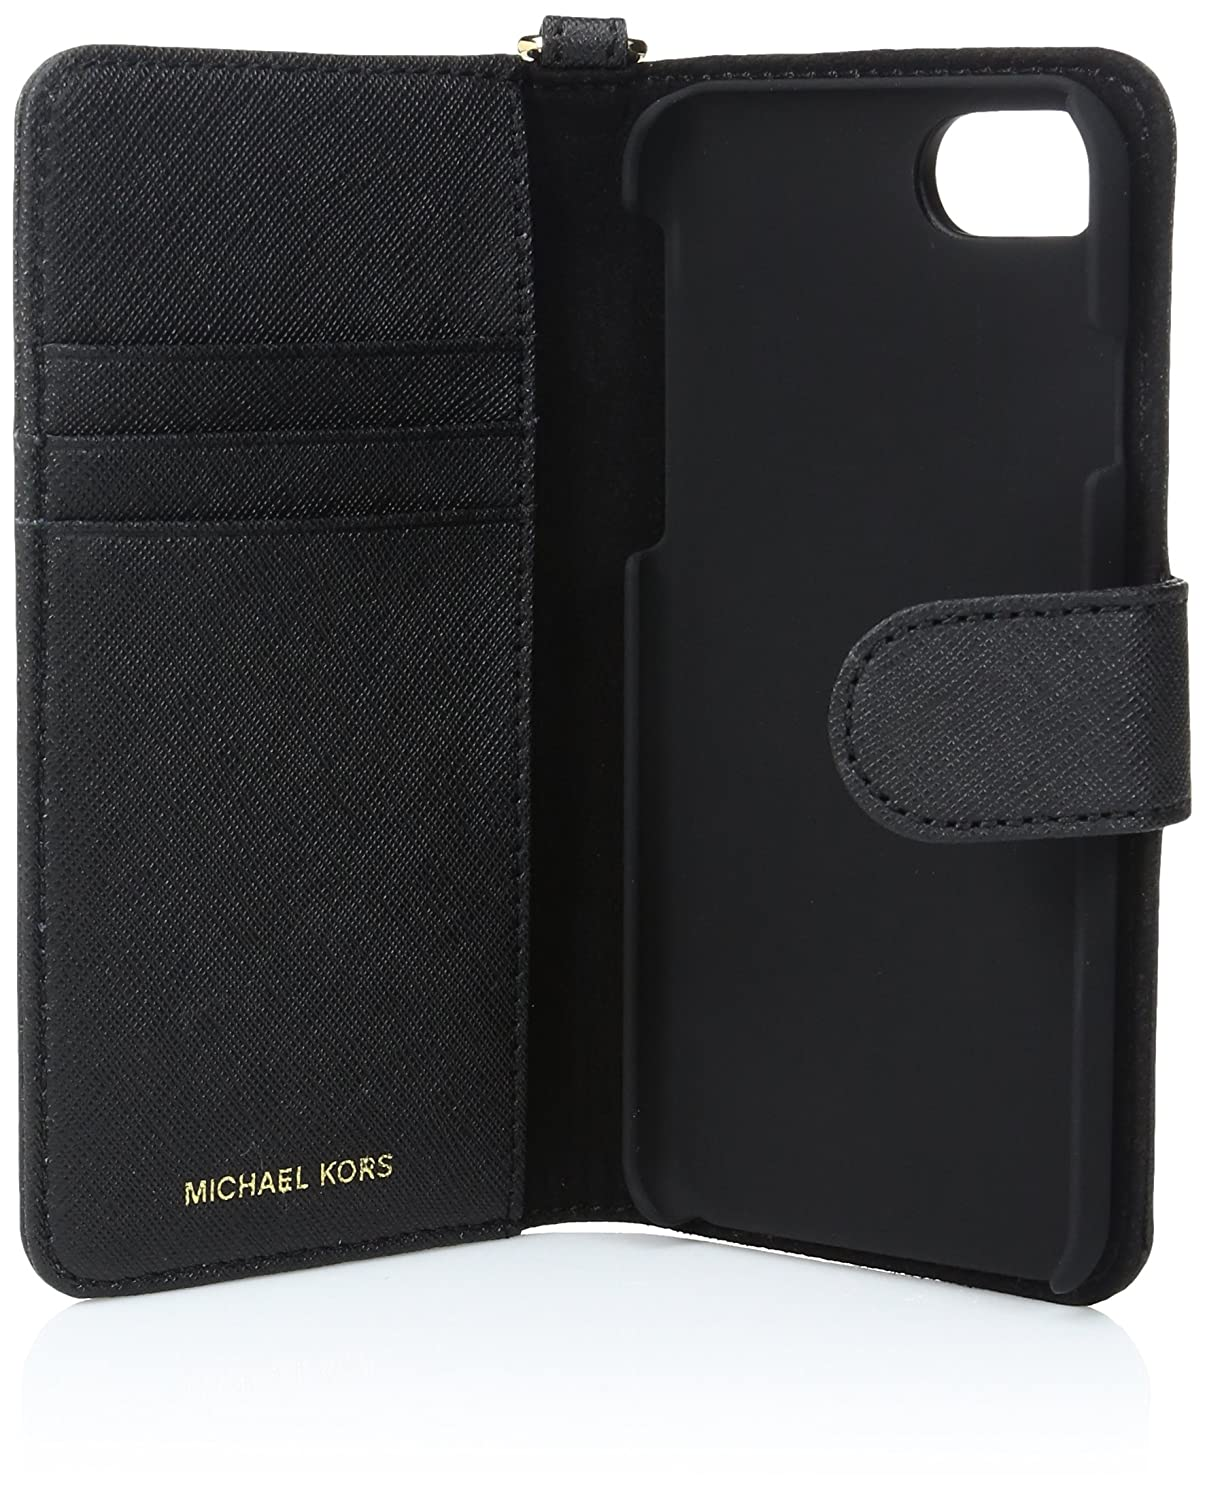 detailed pictures 1e7f7 63d89 Michael Kors Electronic Leather Folio Phone Case 7